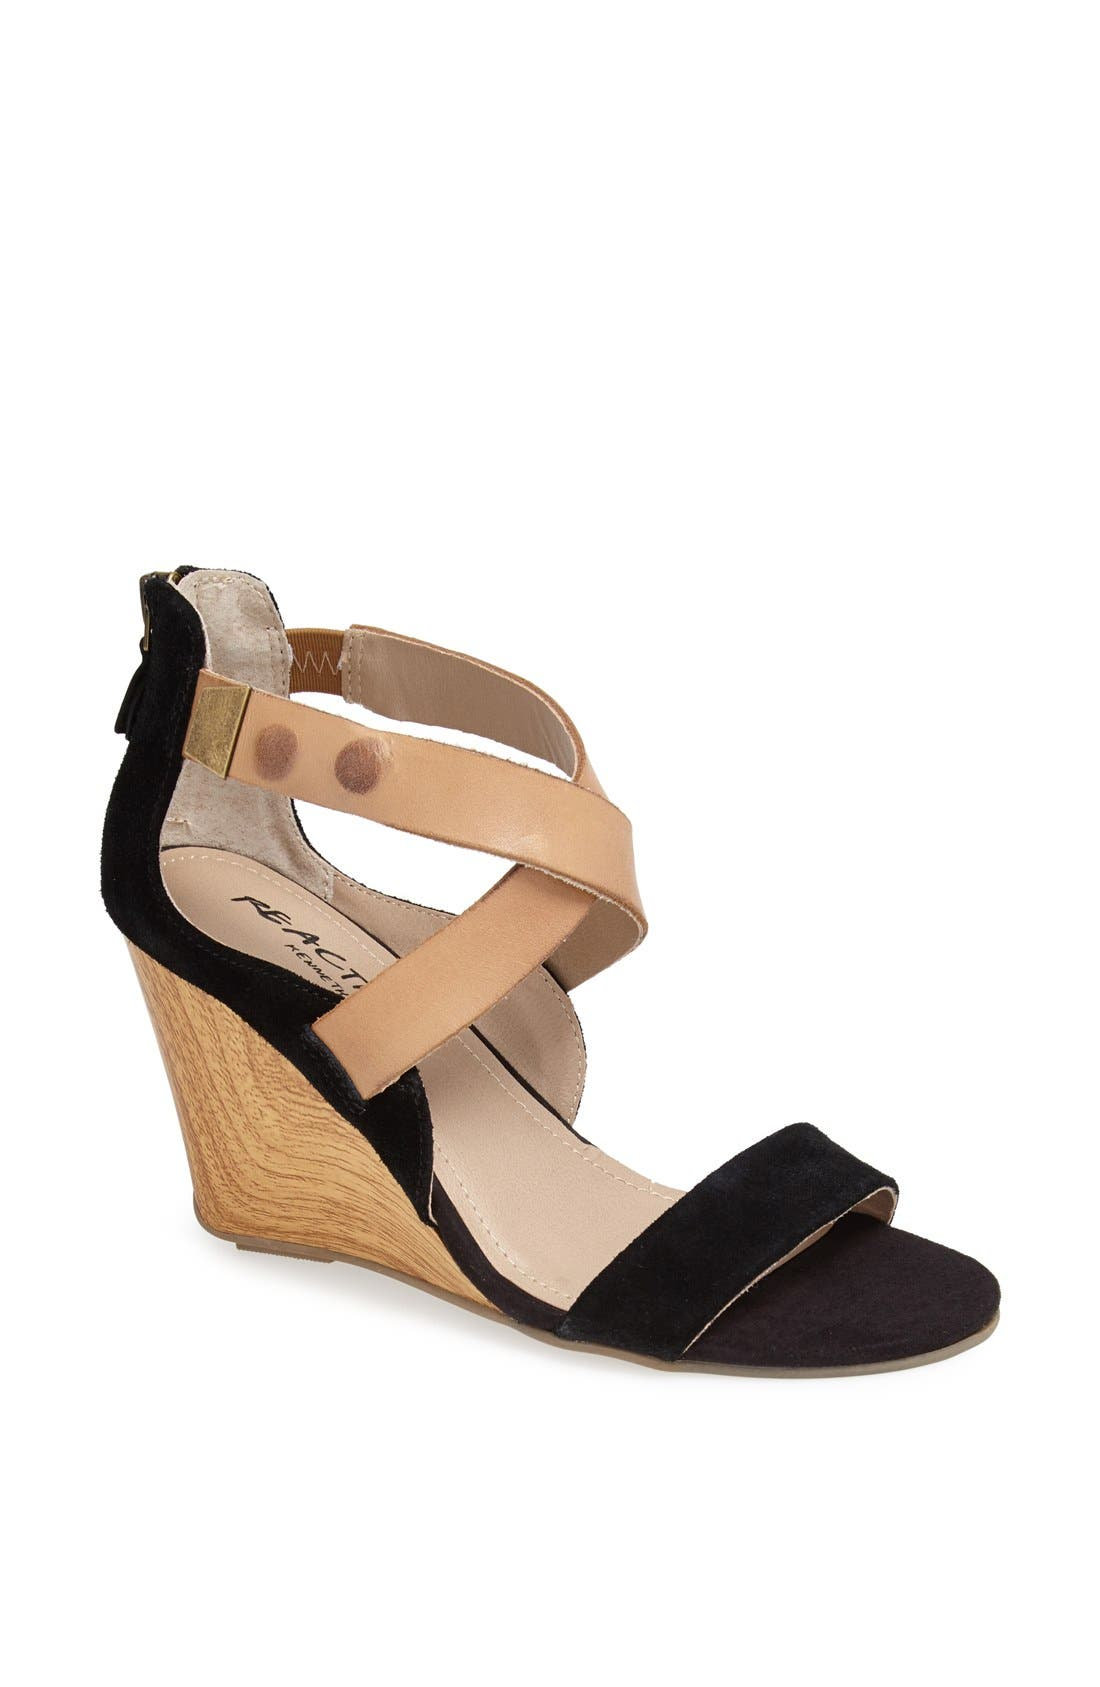 Alternate Image 1 Selected - Kenneth Cole Reaction 'Oh Ava' Wedge Sandal